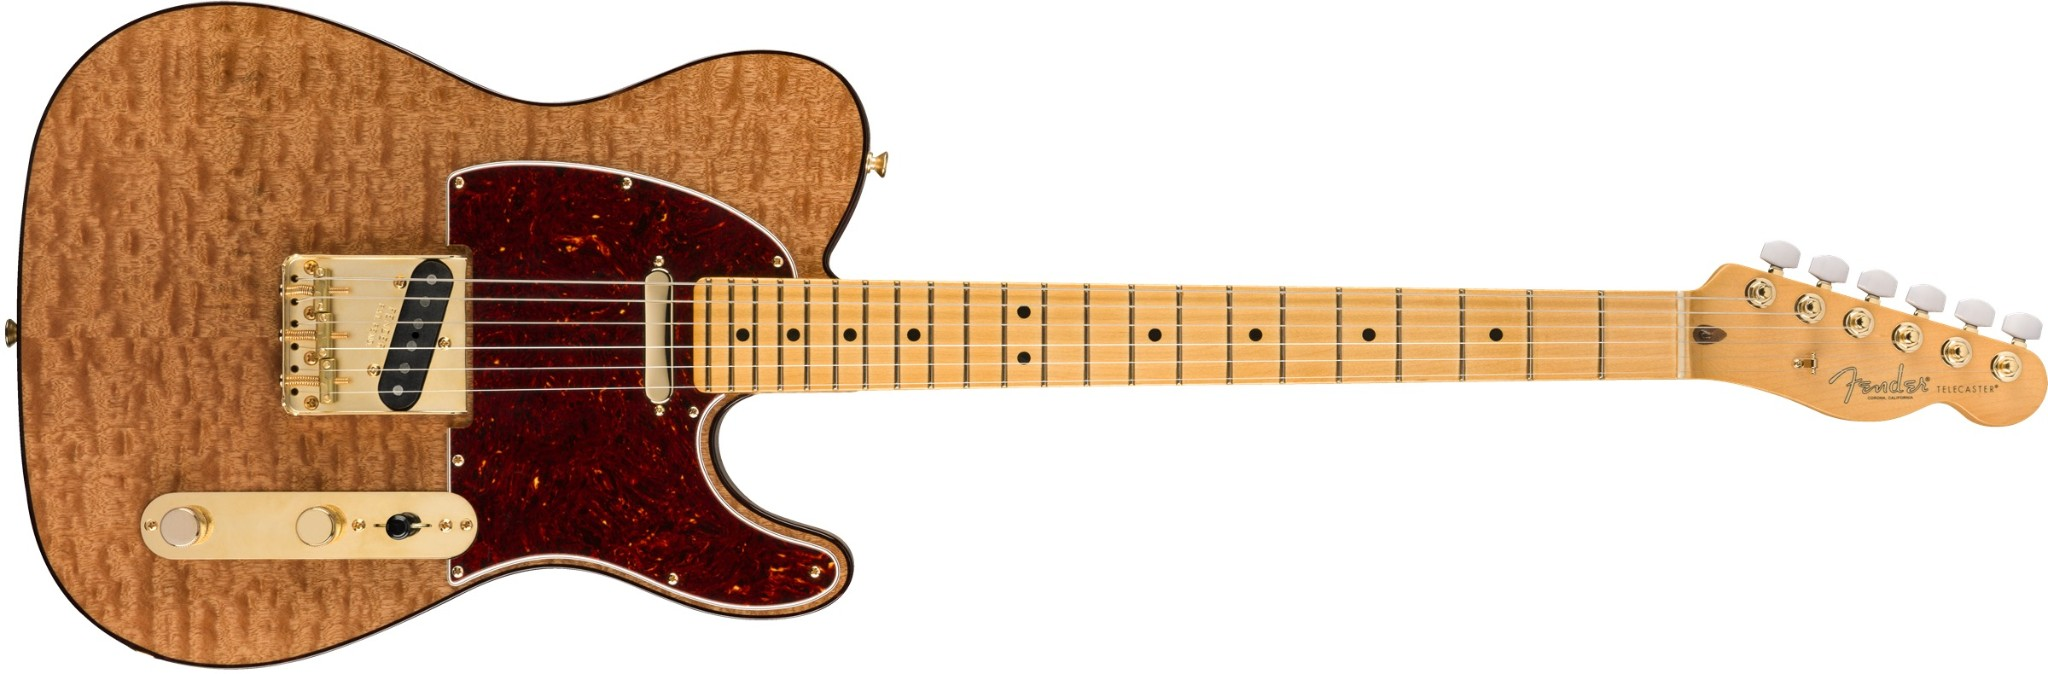 Fender Rarities Red Mahogany Top Telecaster  …